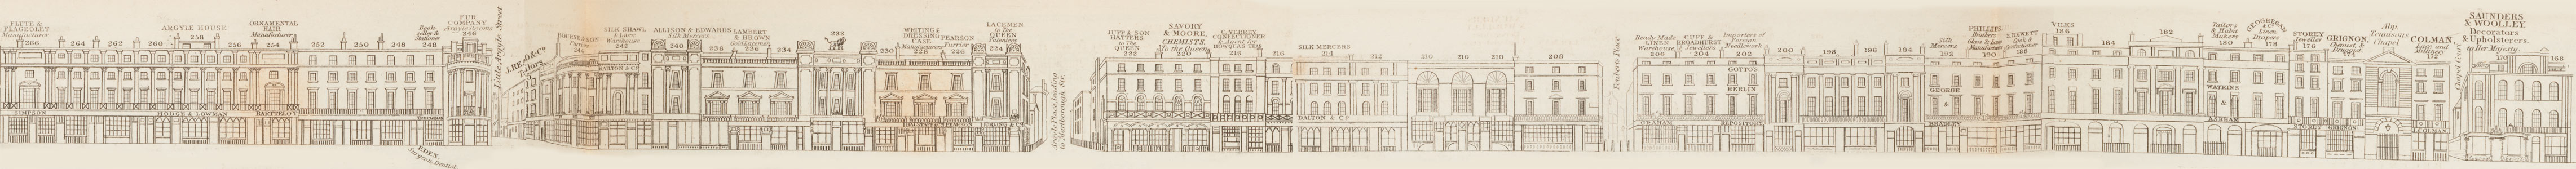 map - Tallis's London street views : No. 4. Regent Street, division 2 (east)